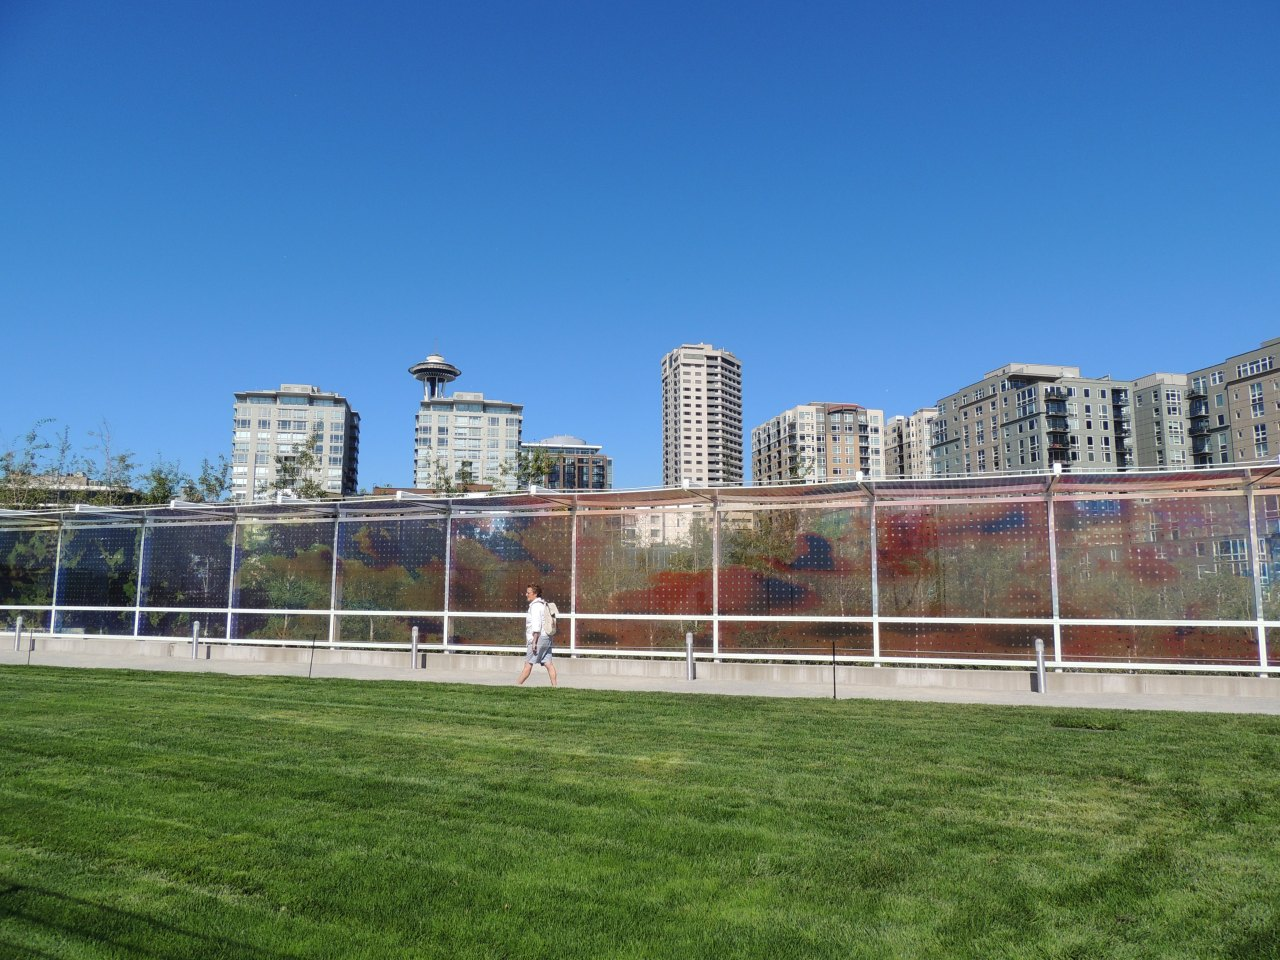 Downtown #Seattle from #Olympic #Sculpture Park